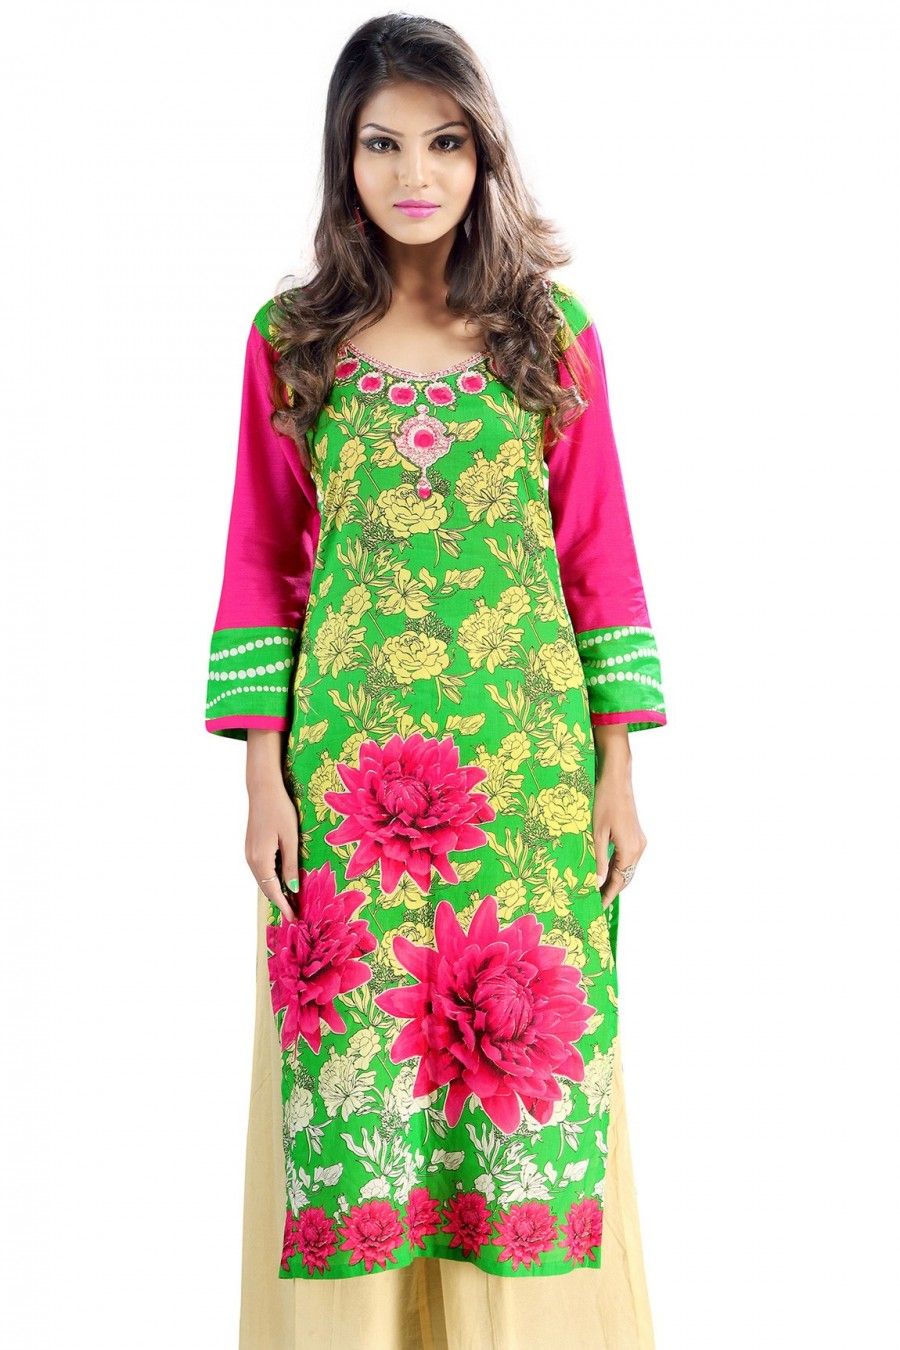 Buy Green and Pink Cambric Cotton Floral Printed Kurti Online